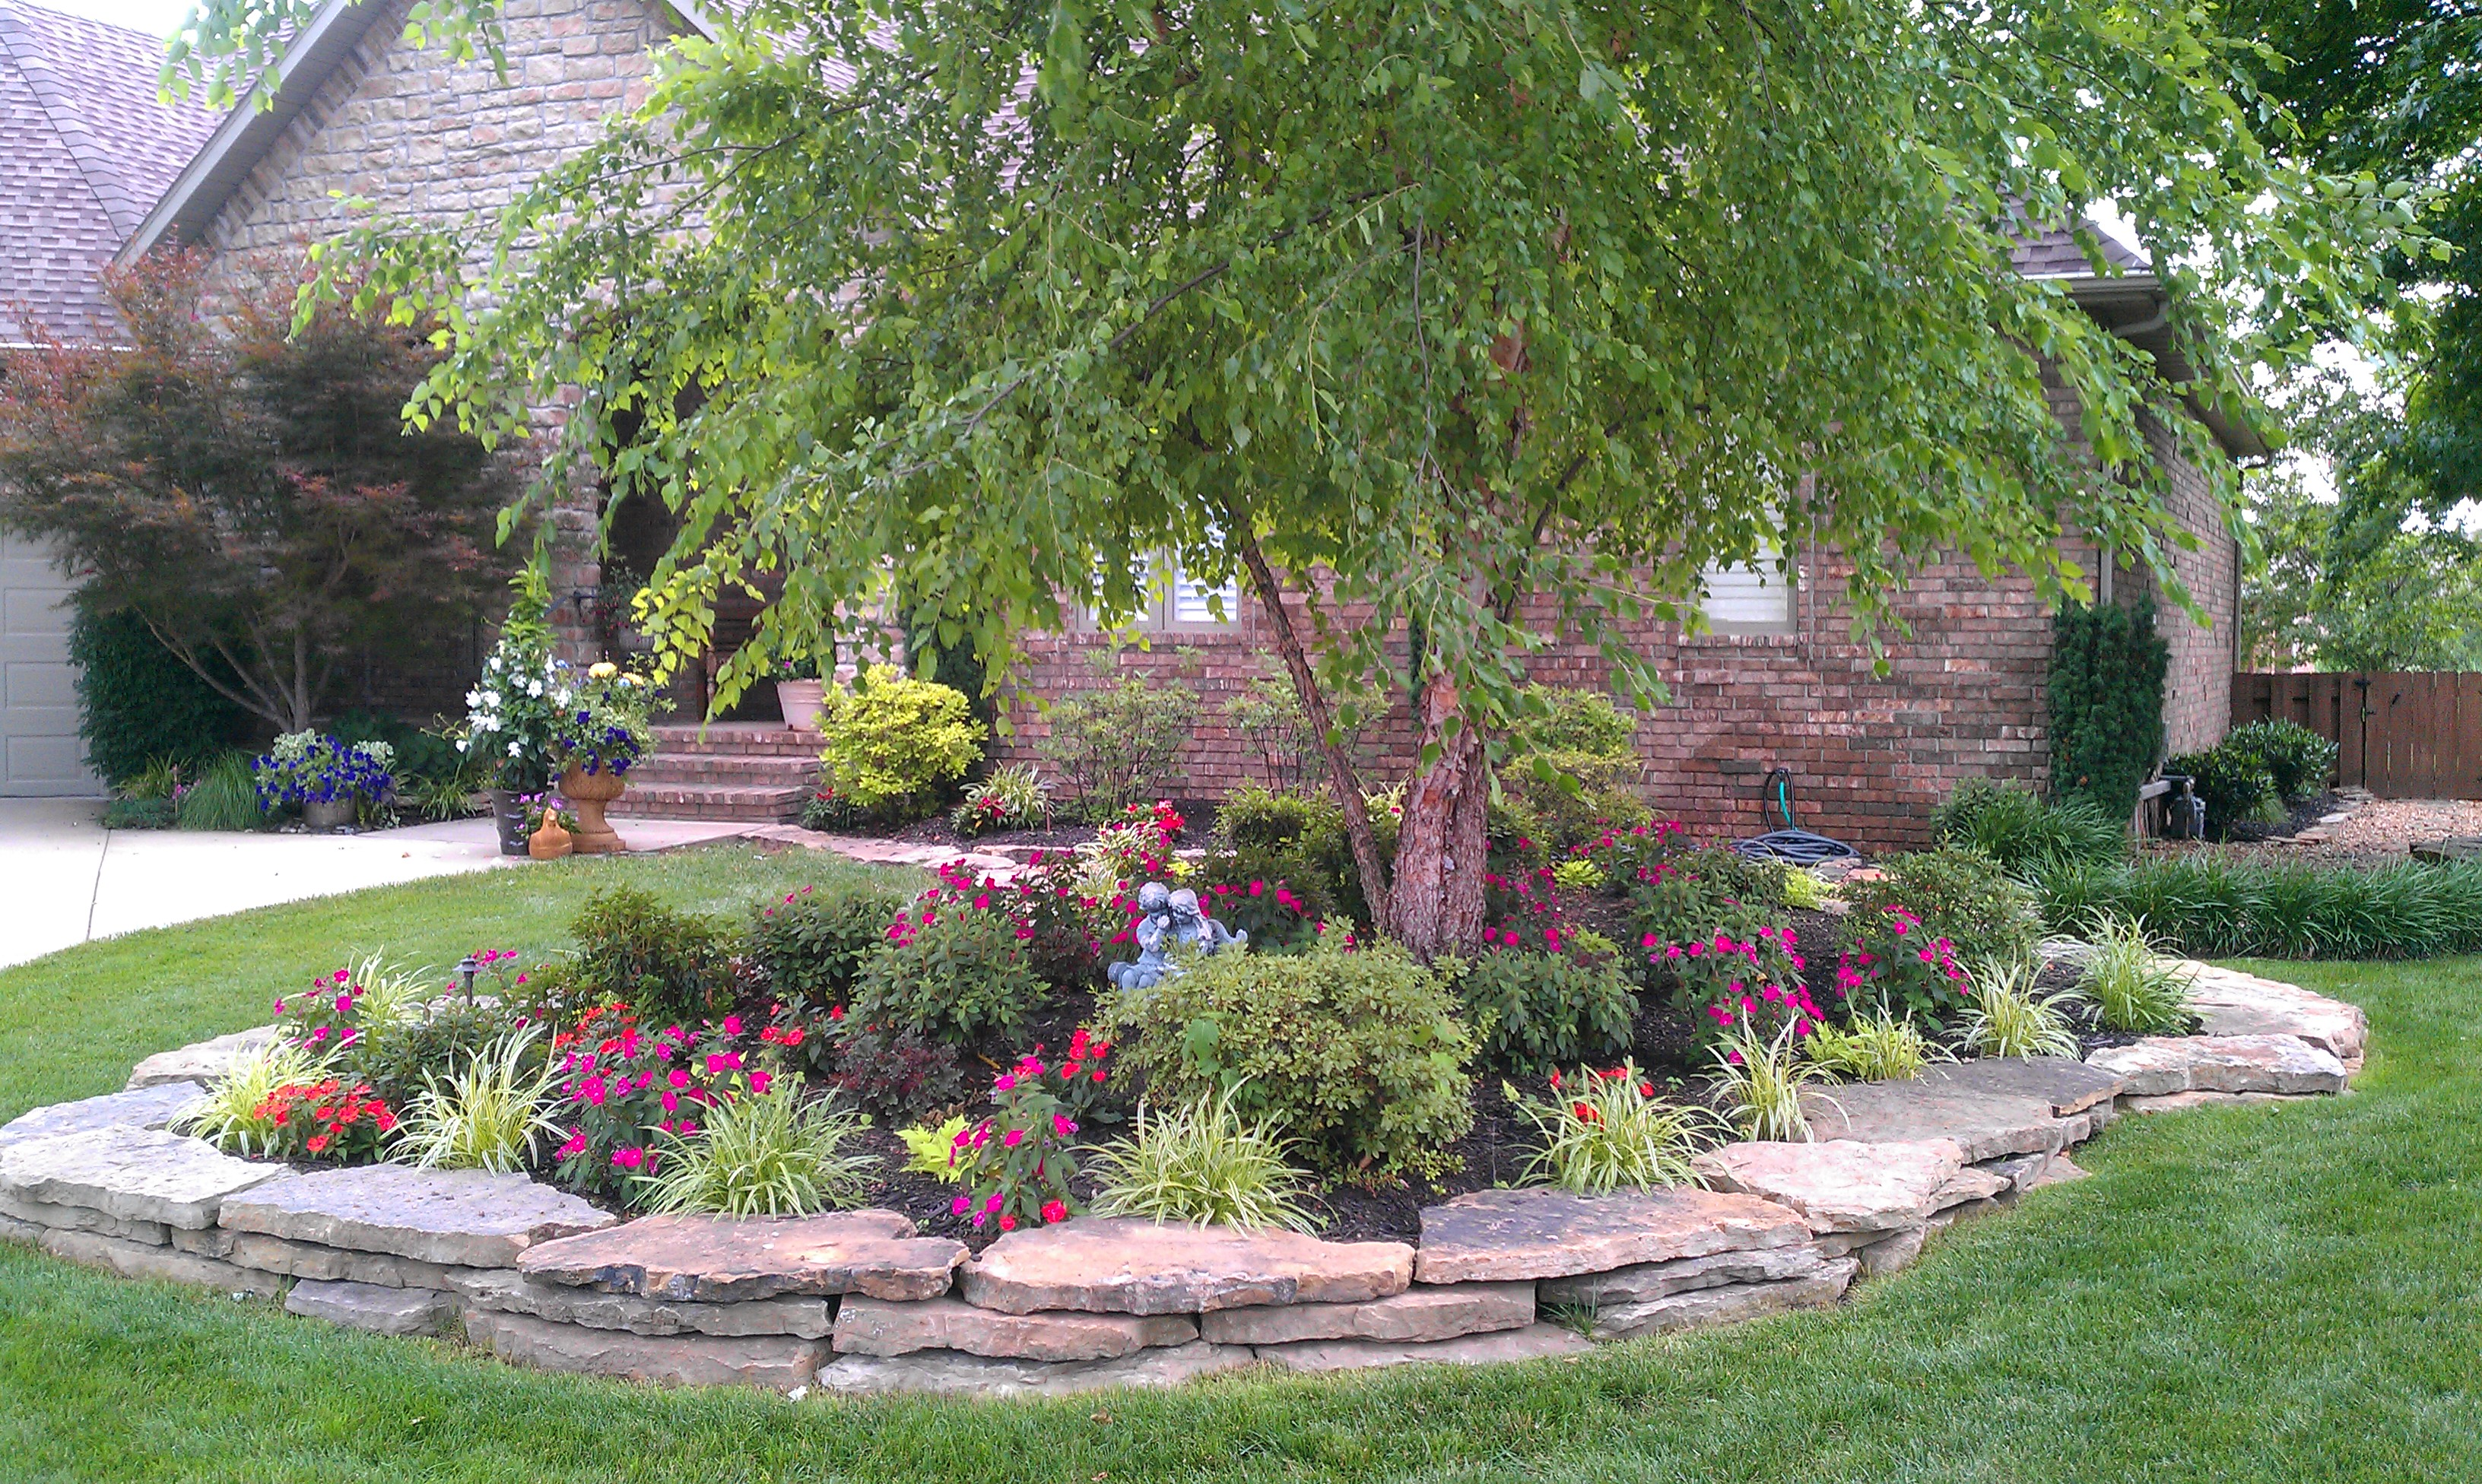 The Best Residential Landscape Design » Design and Ideas